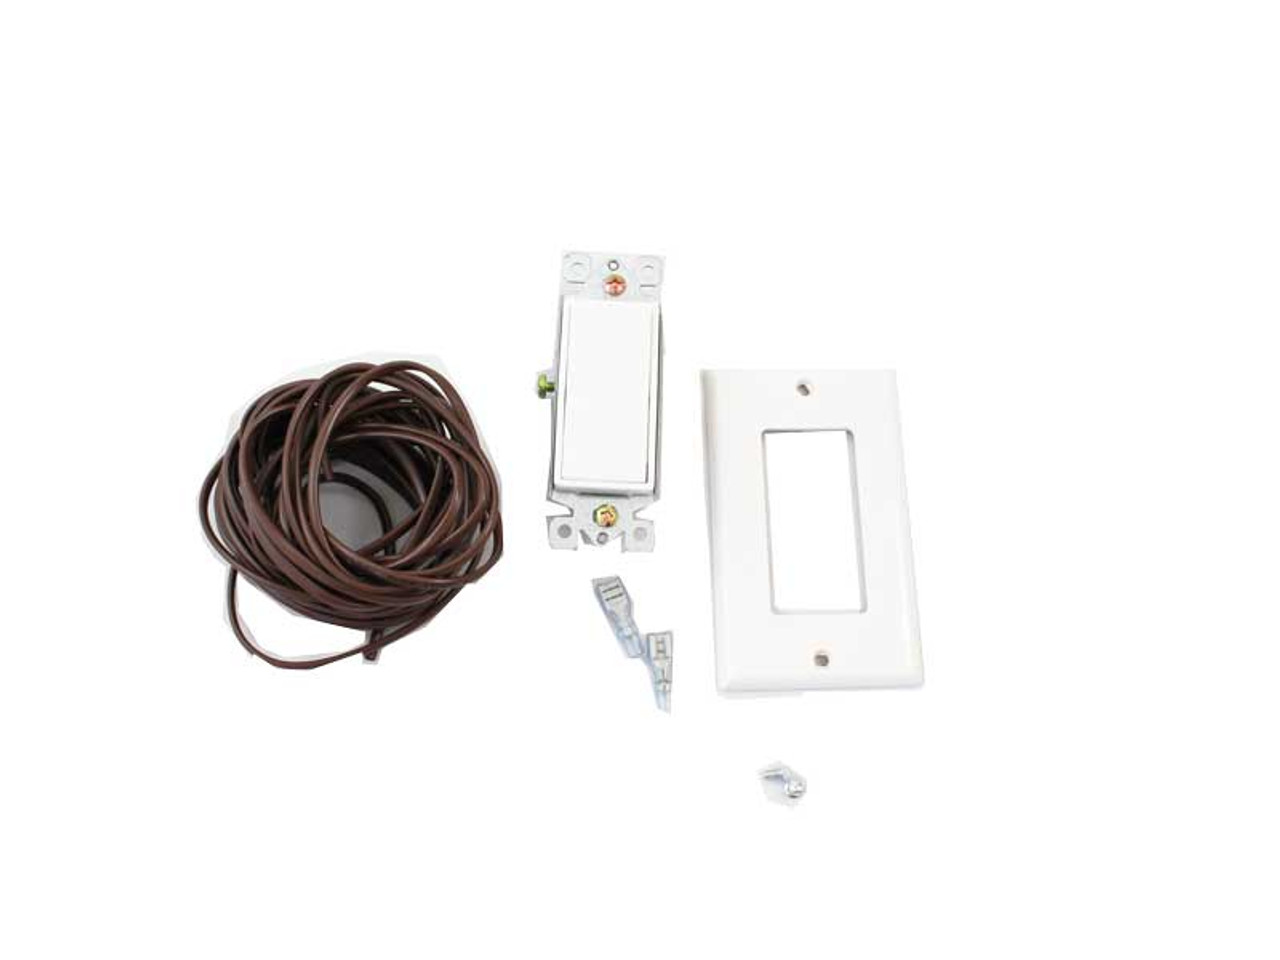 Skytech Sky-WS Wall Mounted On/Off Fireplace Control Wired